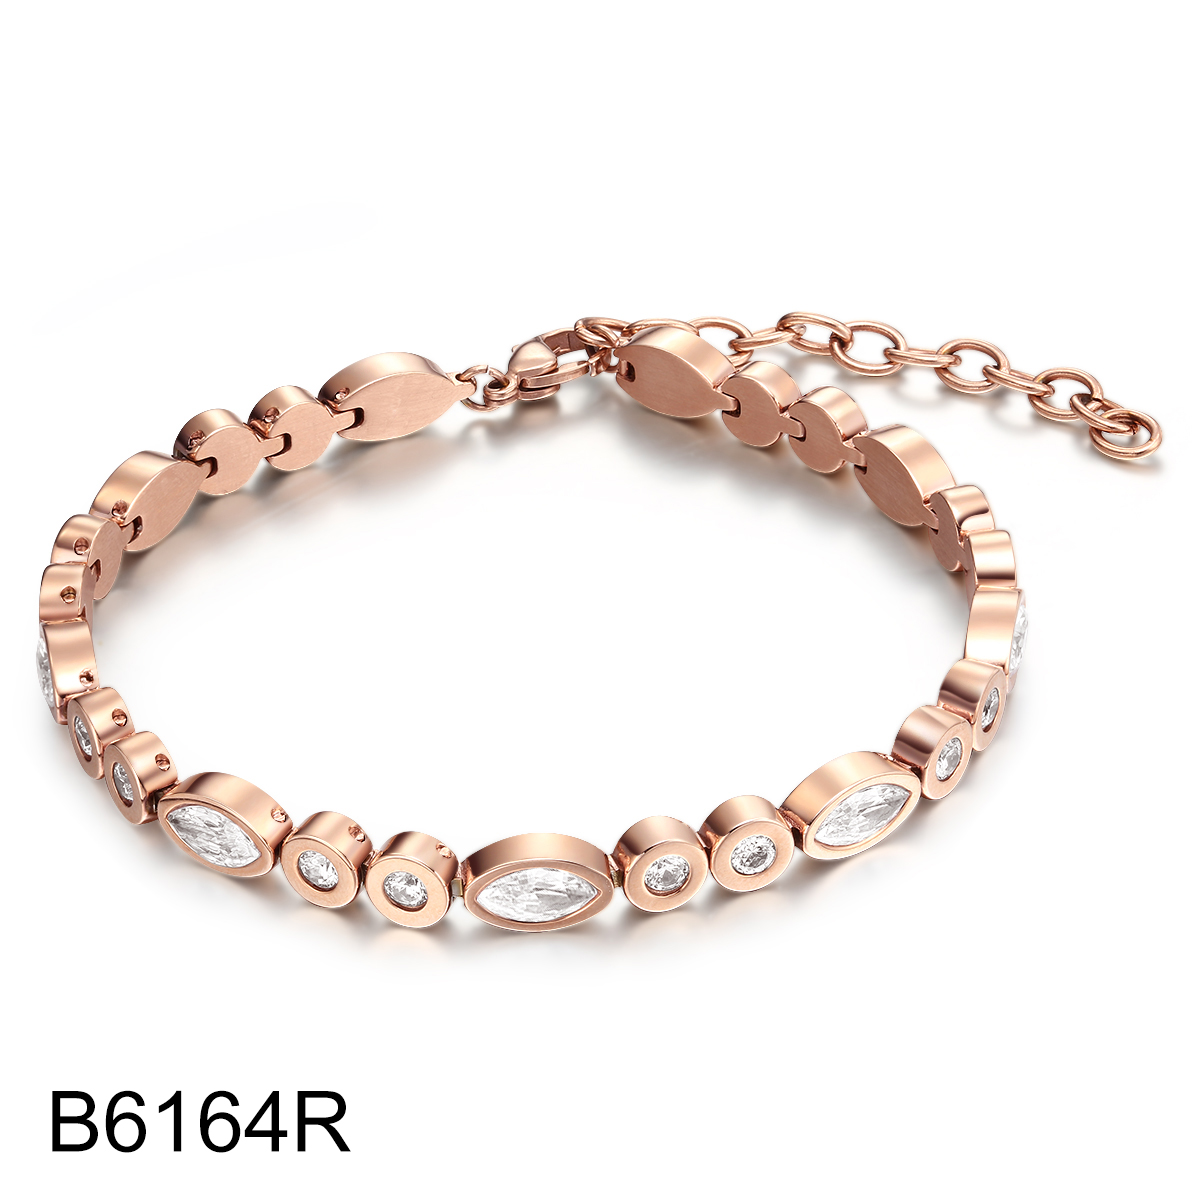 B6164R rose gold diamond tennis stainless steel bracelet